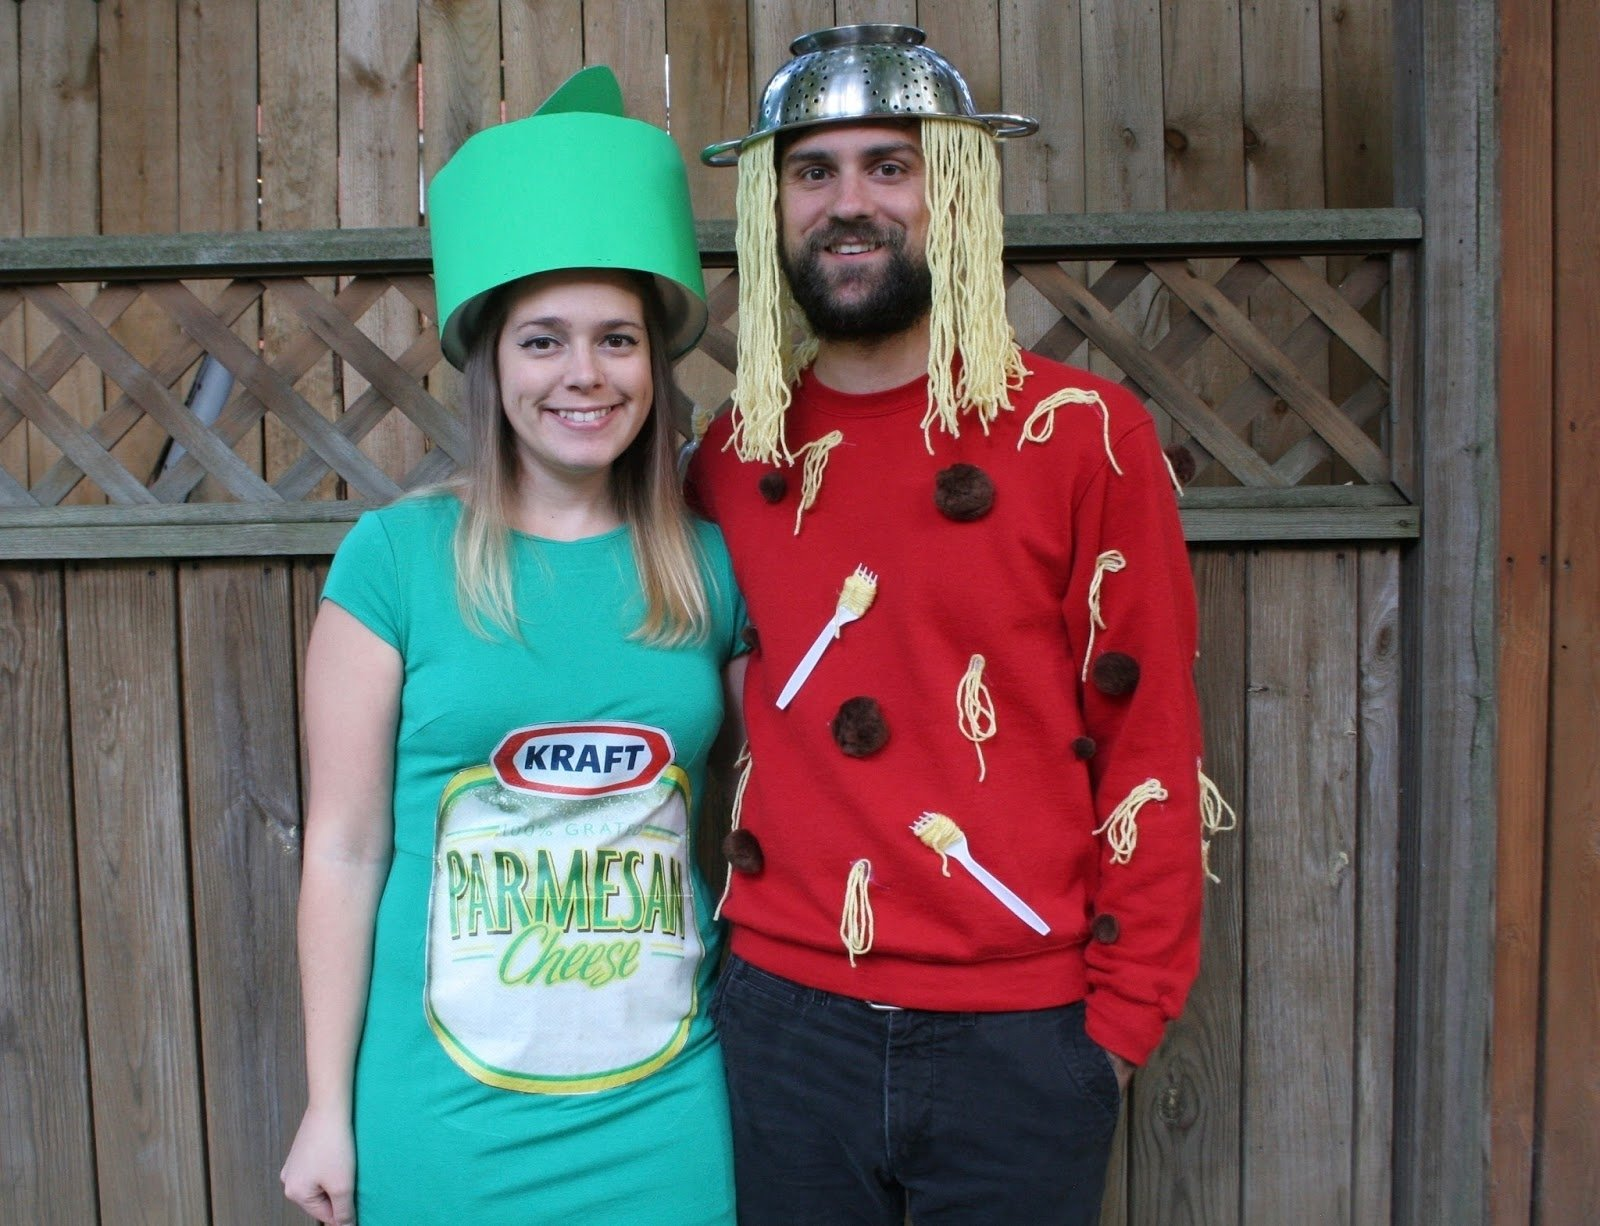 10 Wonderful Good Couple Halloween Costume Ideas our halloween costumes spaghetti parmesan cheese the surznick 2 2020